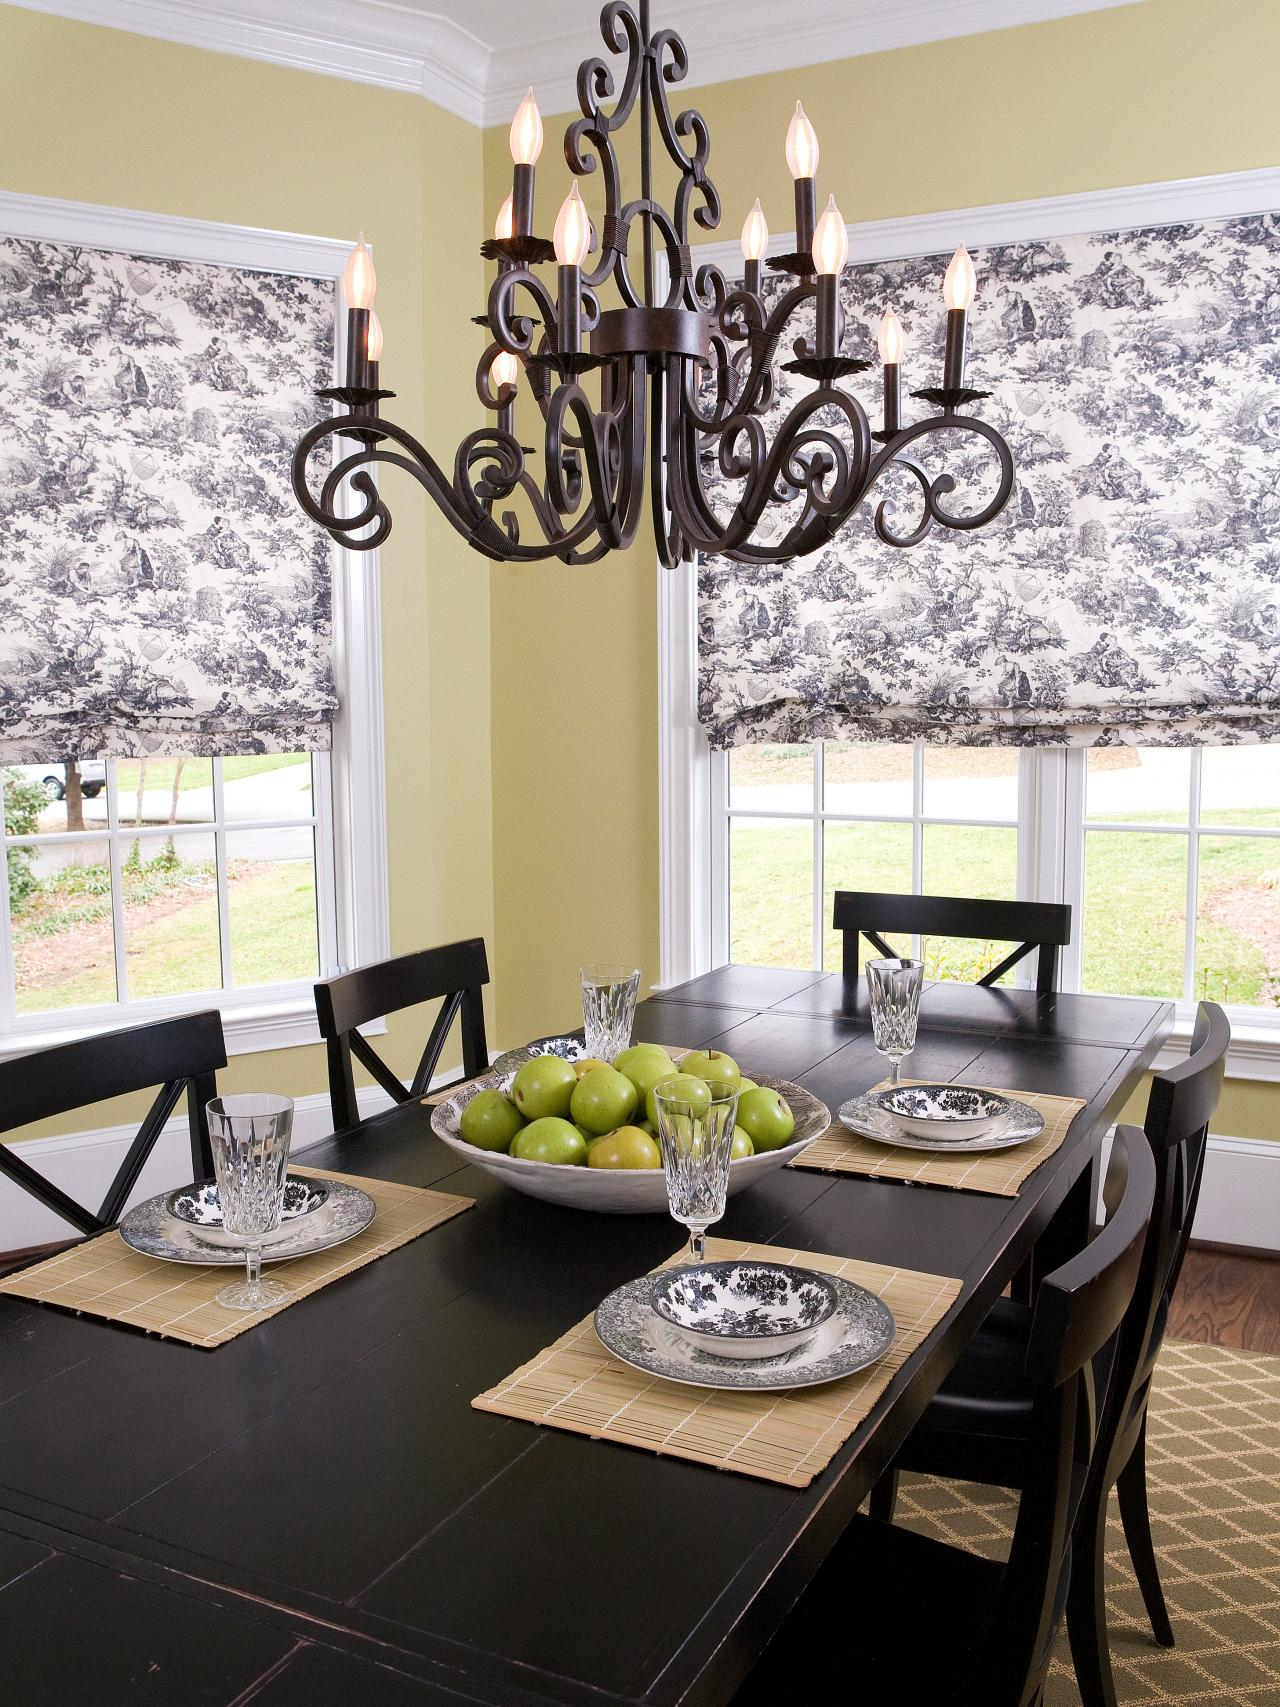 French country refinement with toile Roman shades